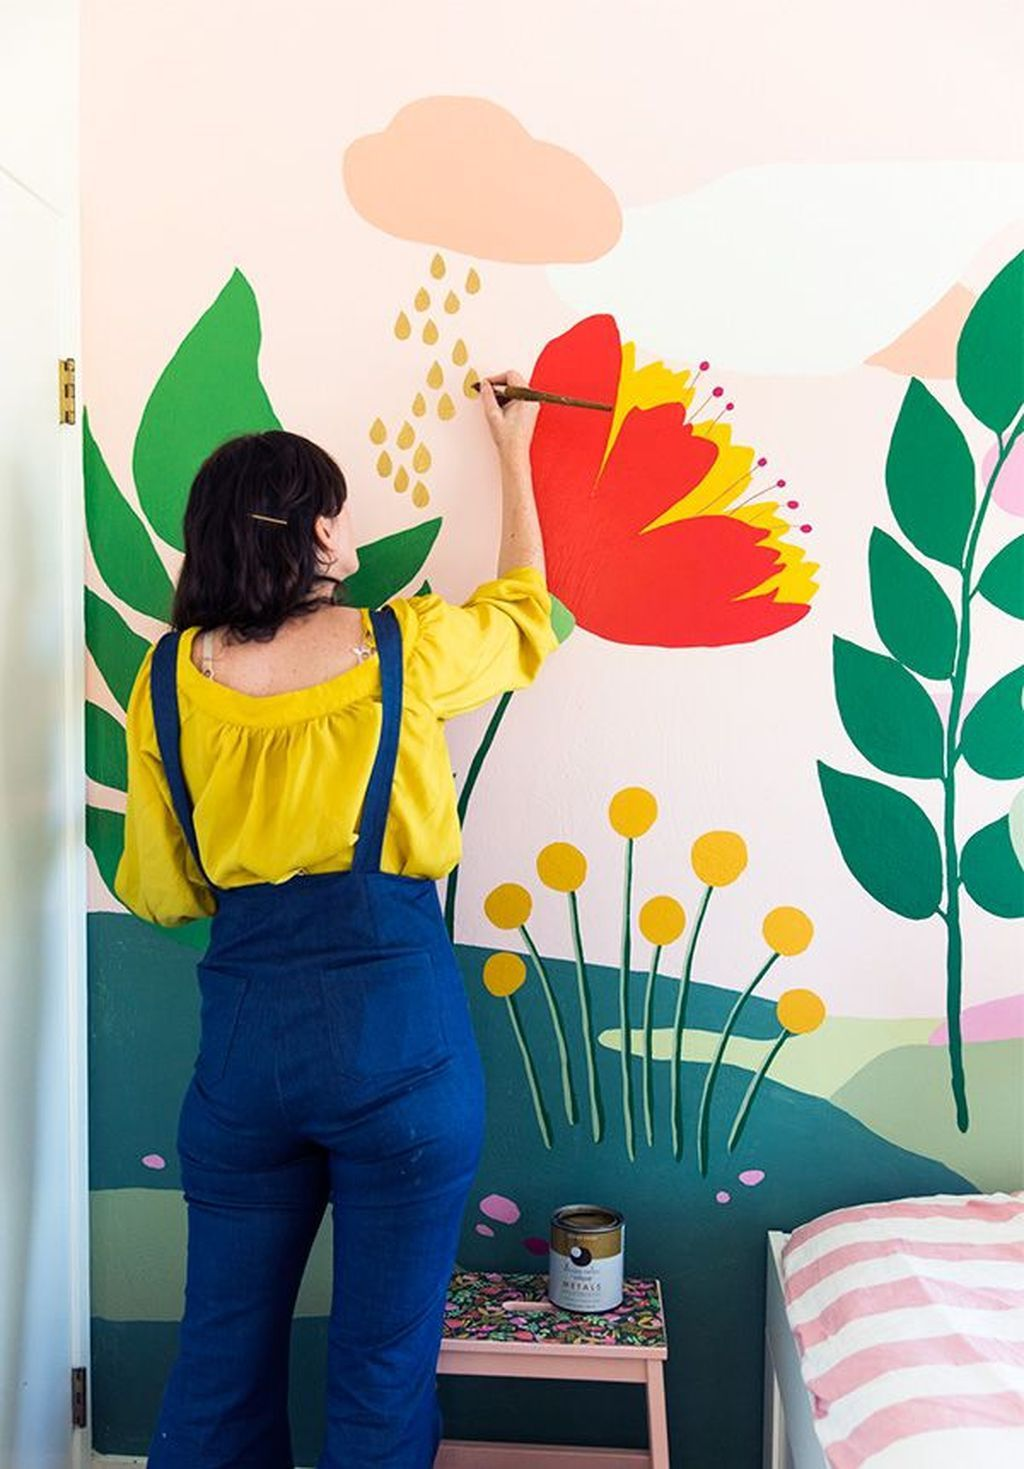 Easy Playroom Mural Design Ideas For Kids 08 Murales In 2019